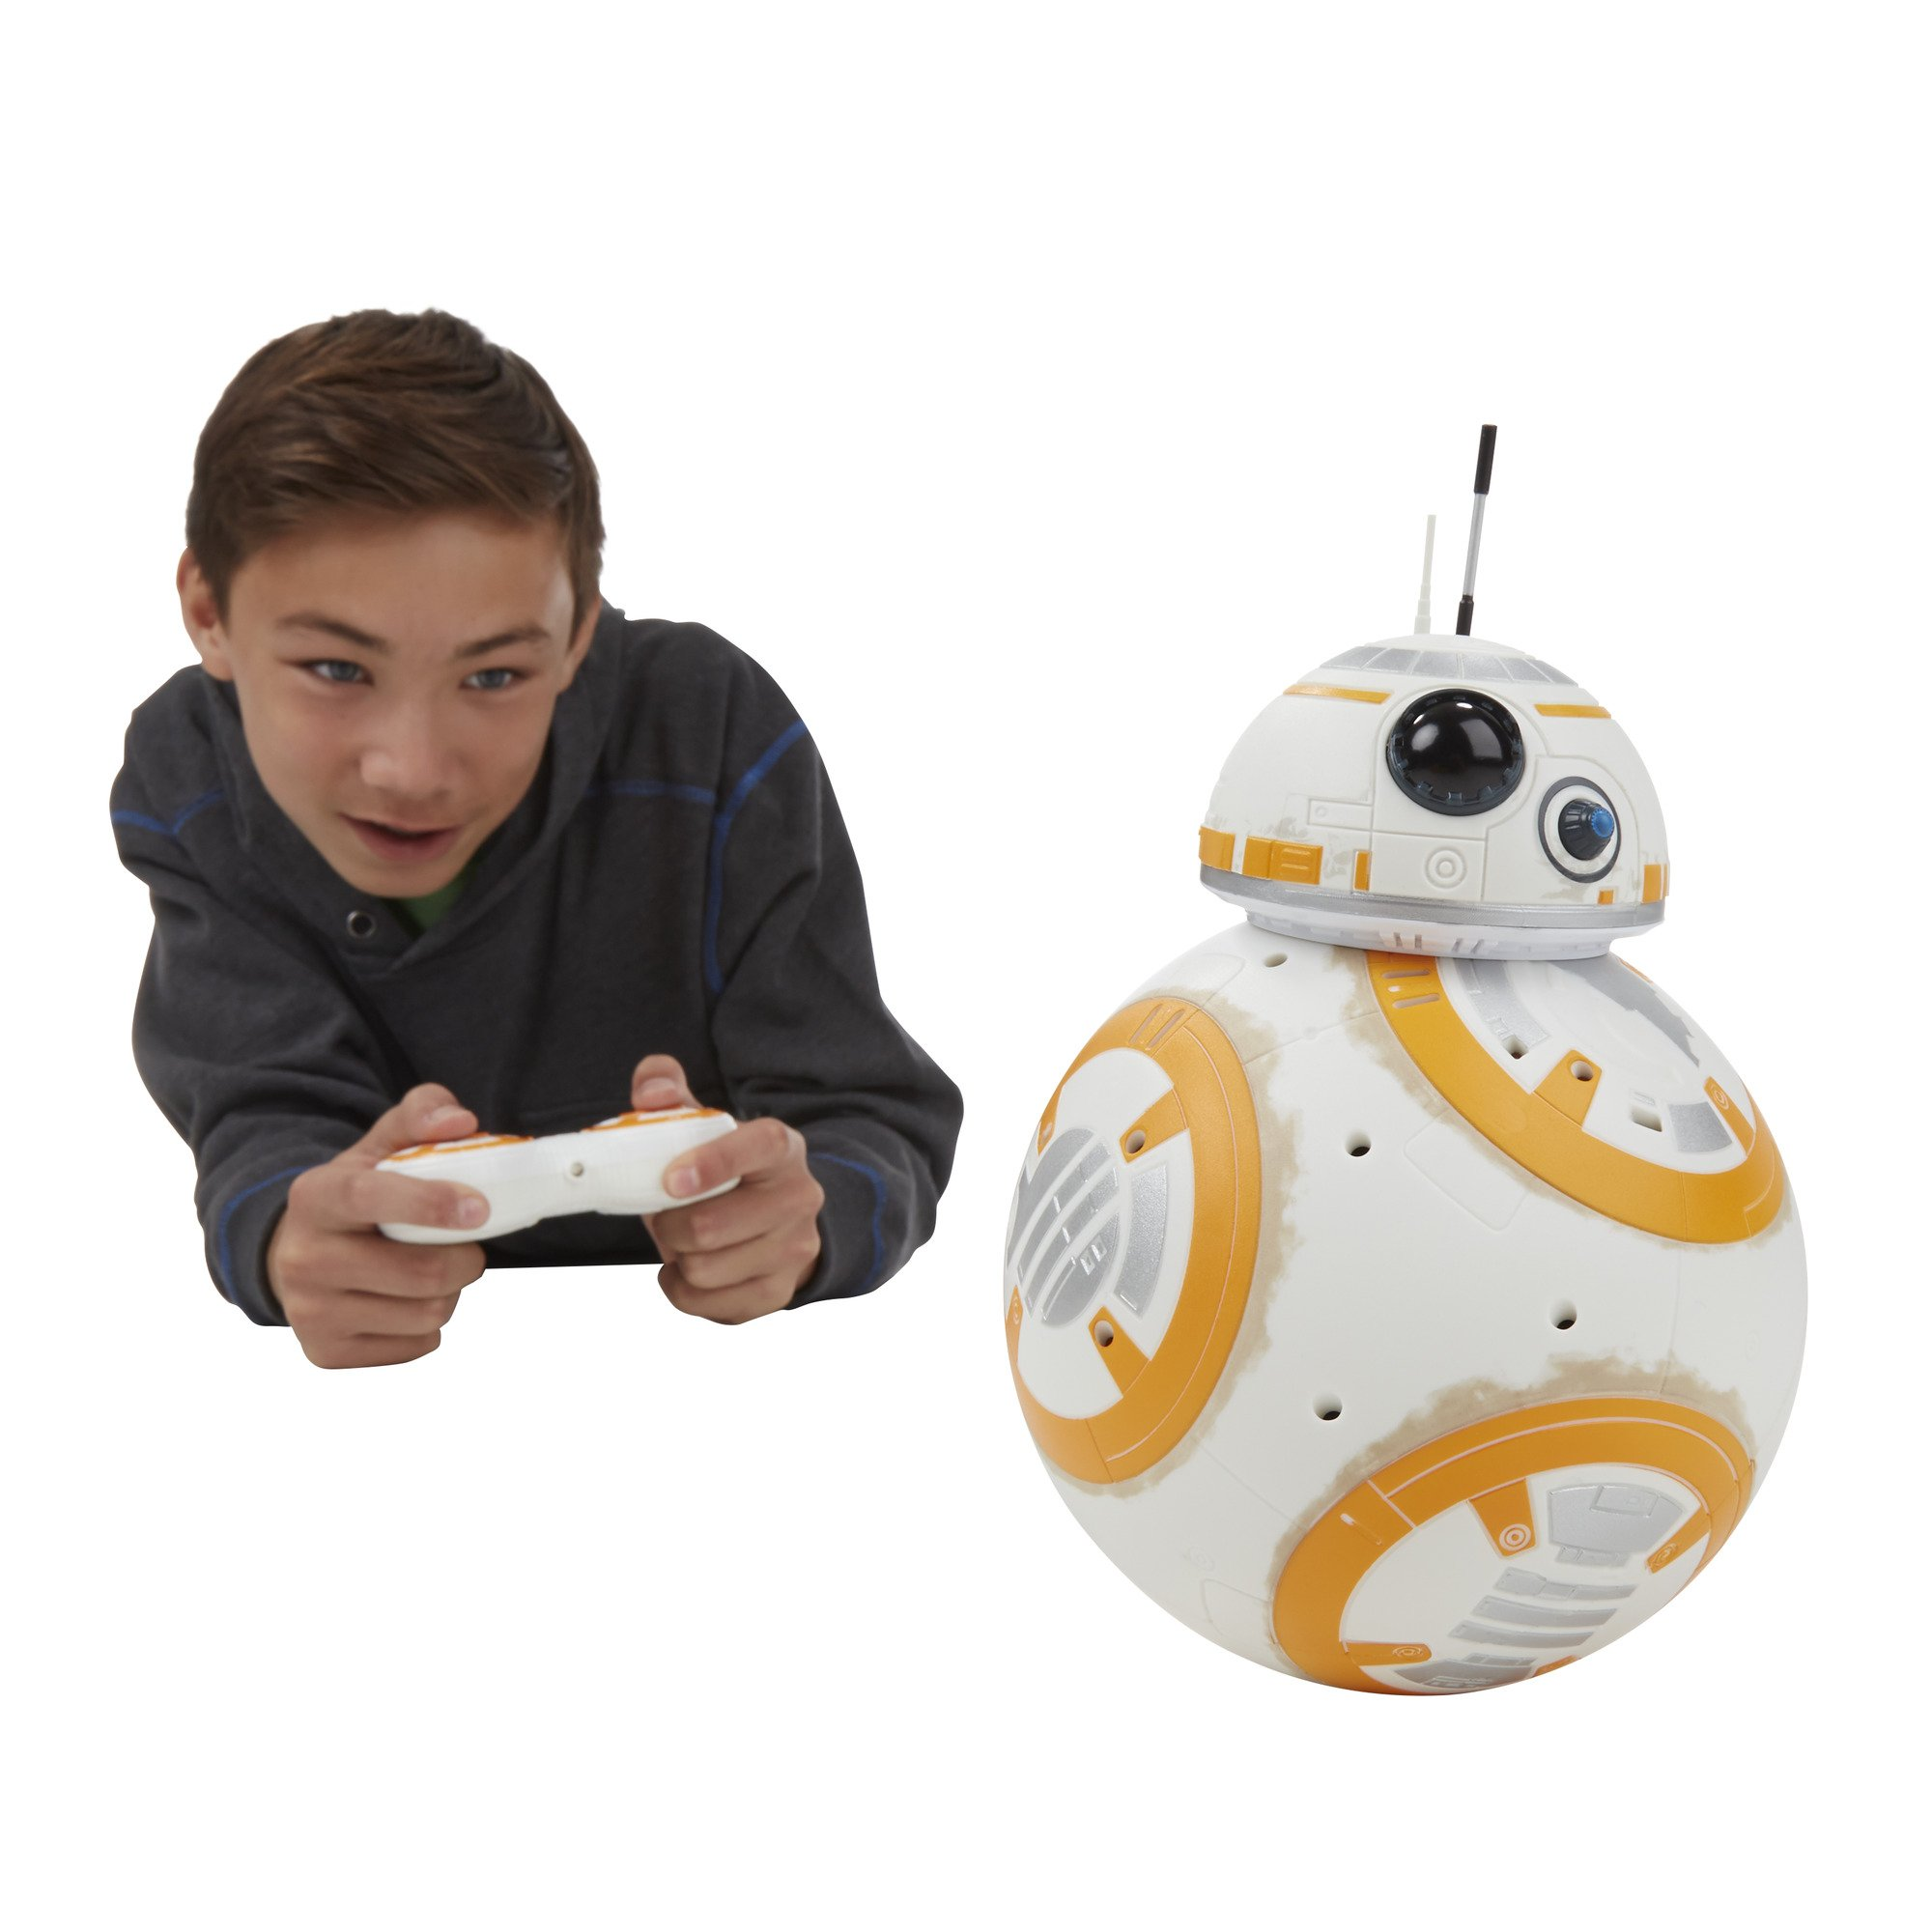 Star Wars The Force Awakens RC BB-8 by Star Wars (Image #9)